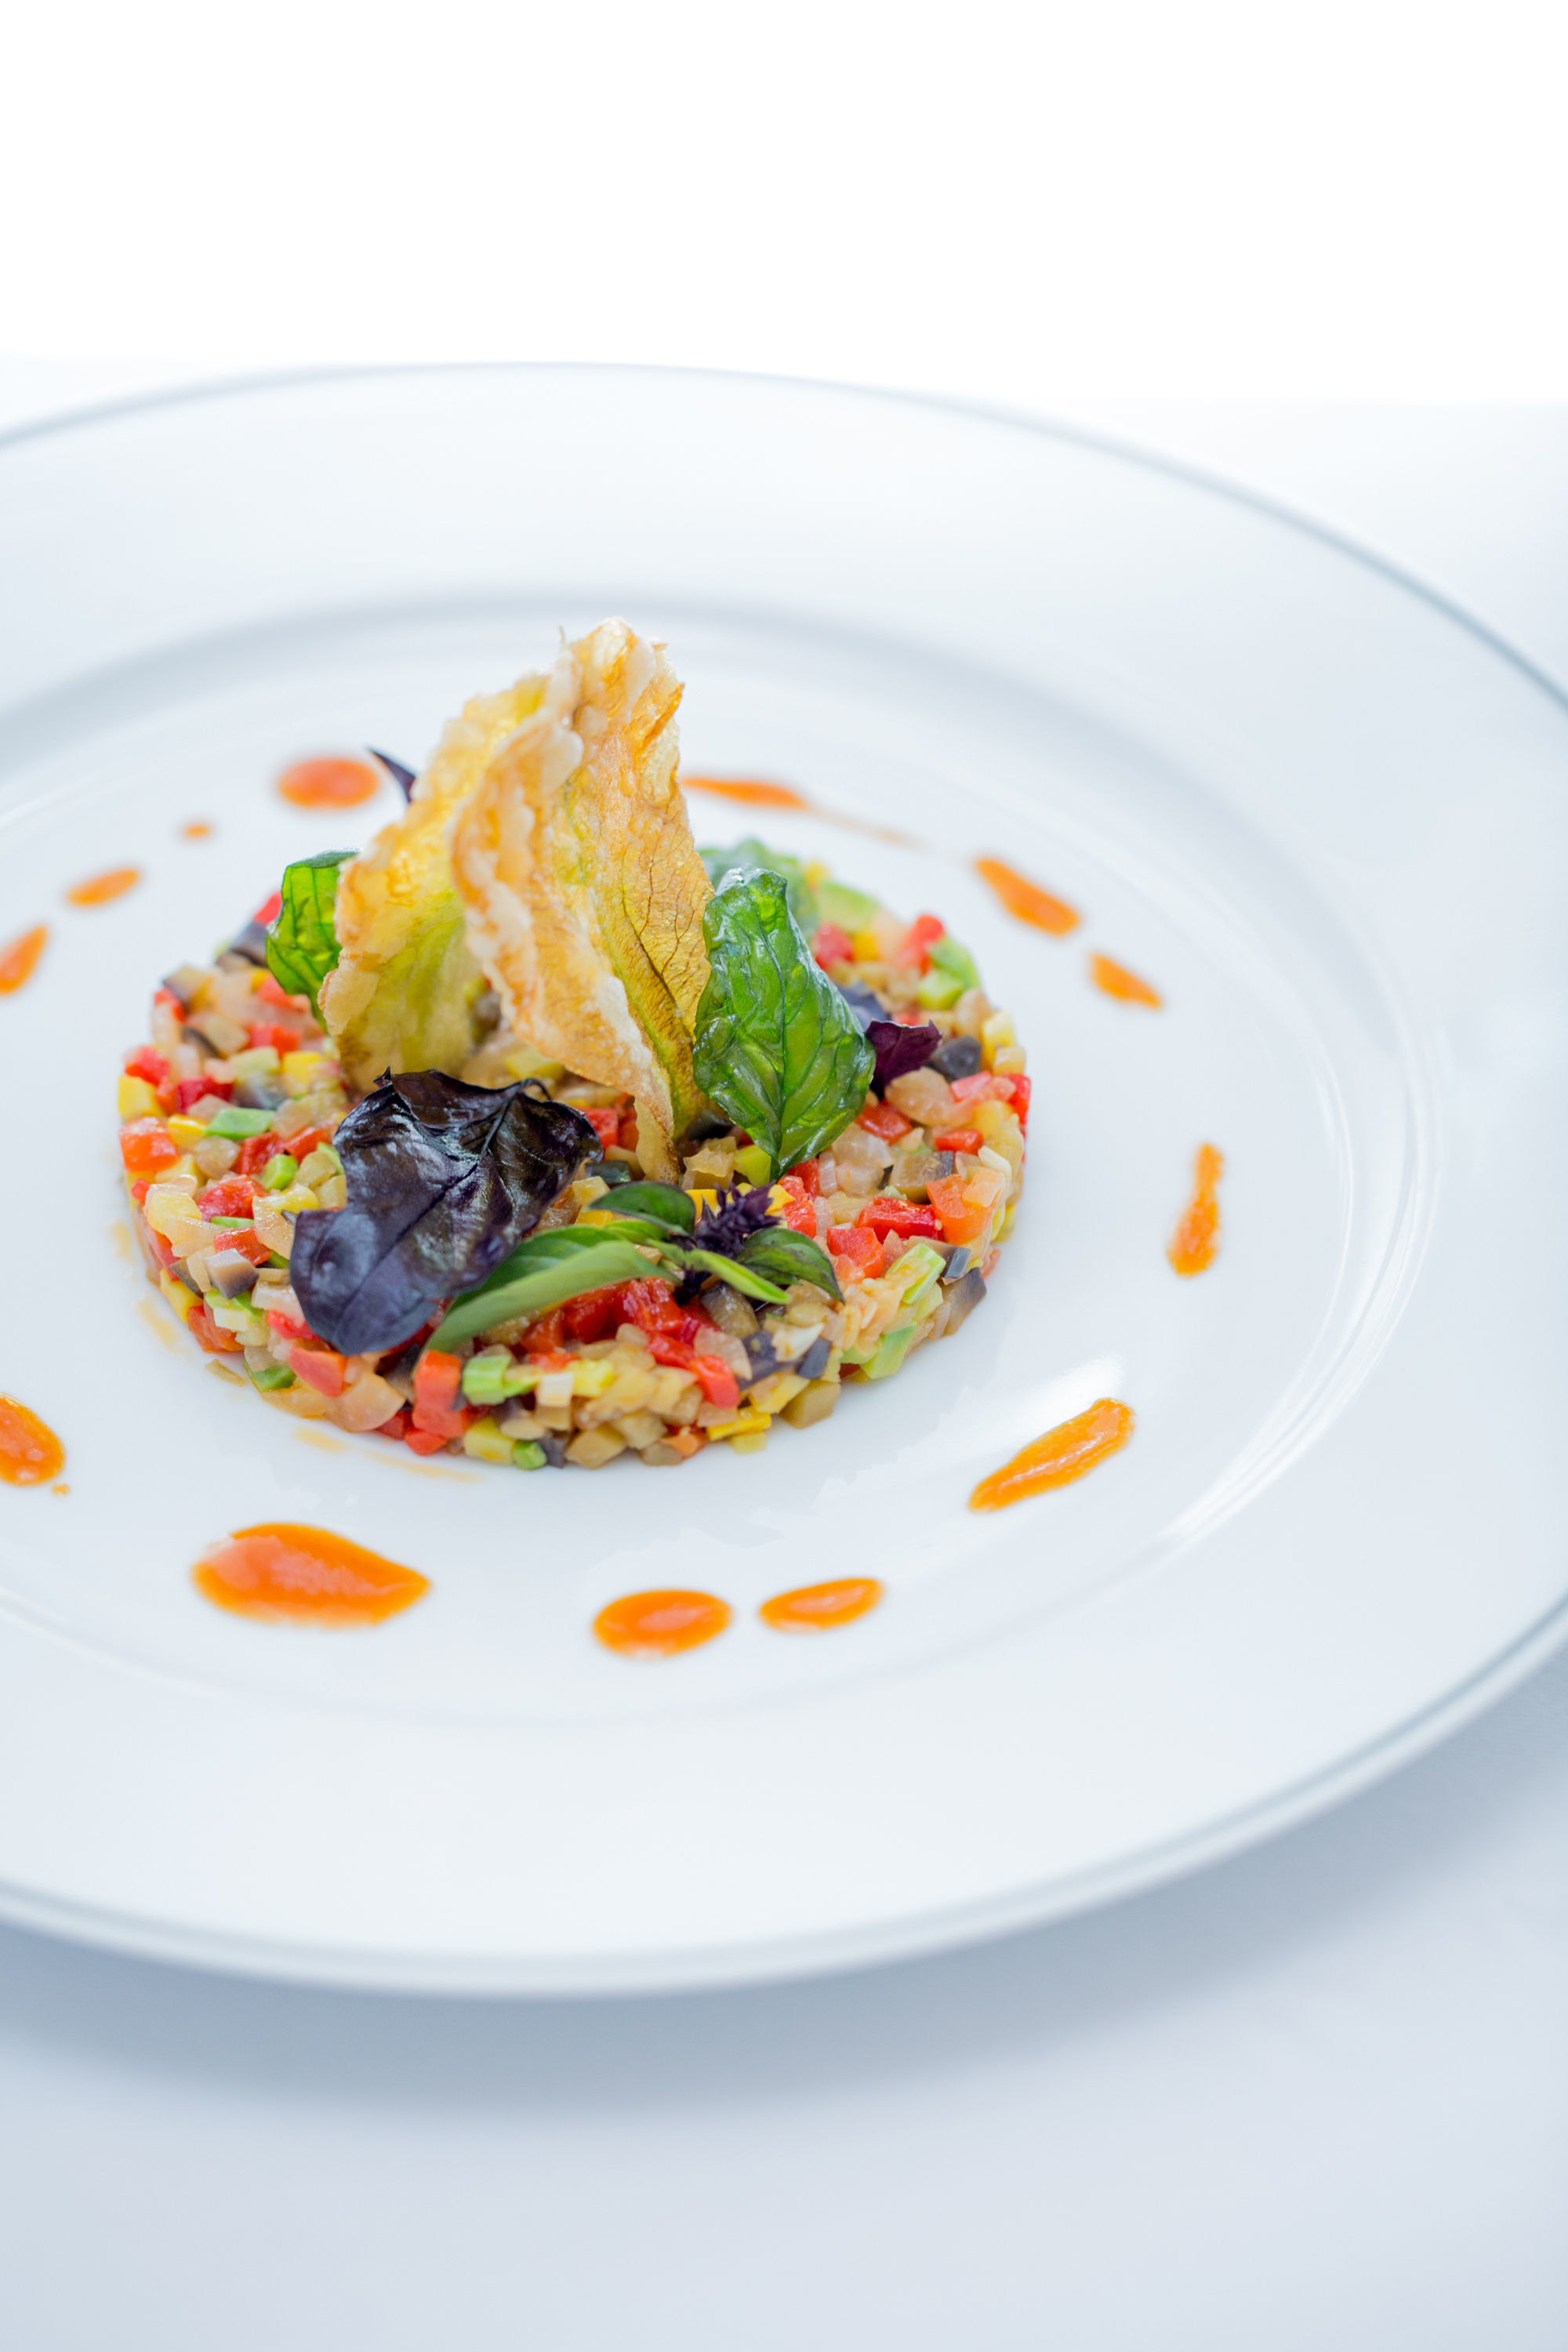 Cook these: Three recipes from French chef Alain Ducasse